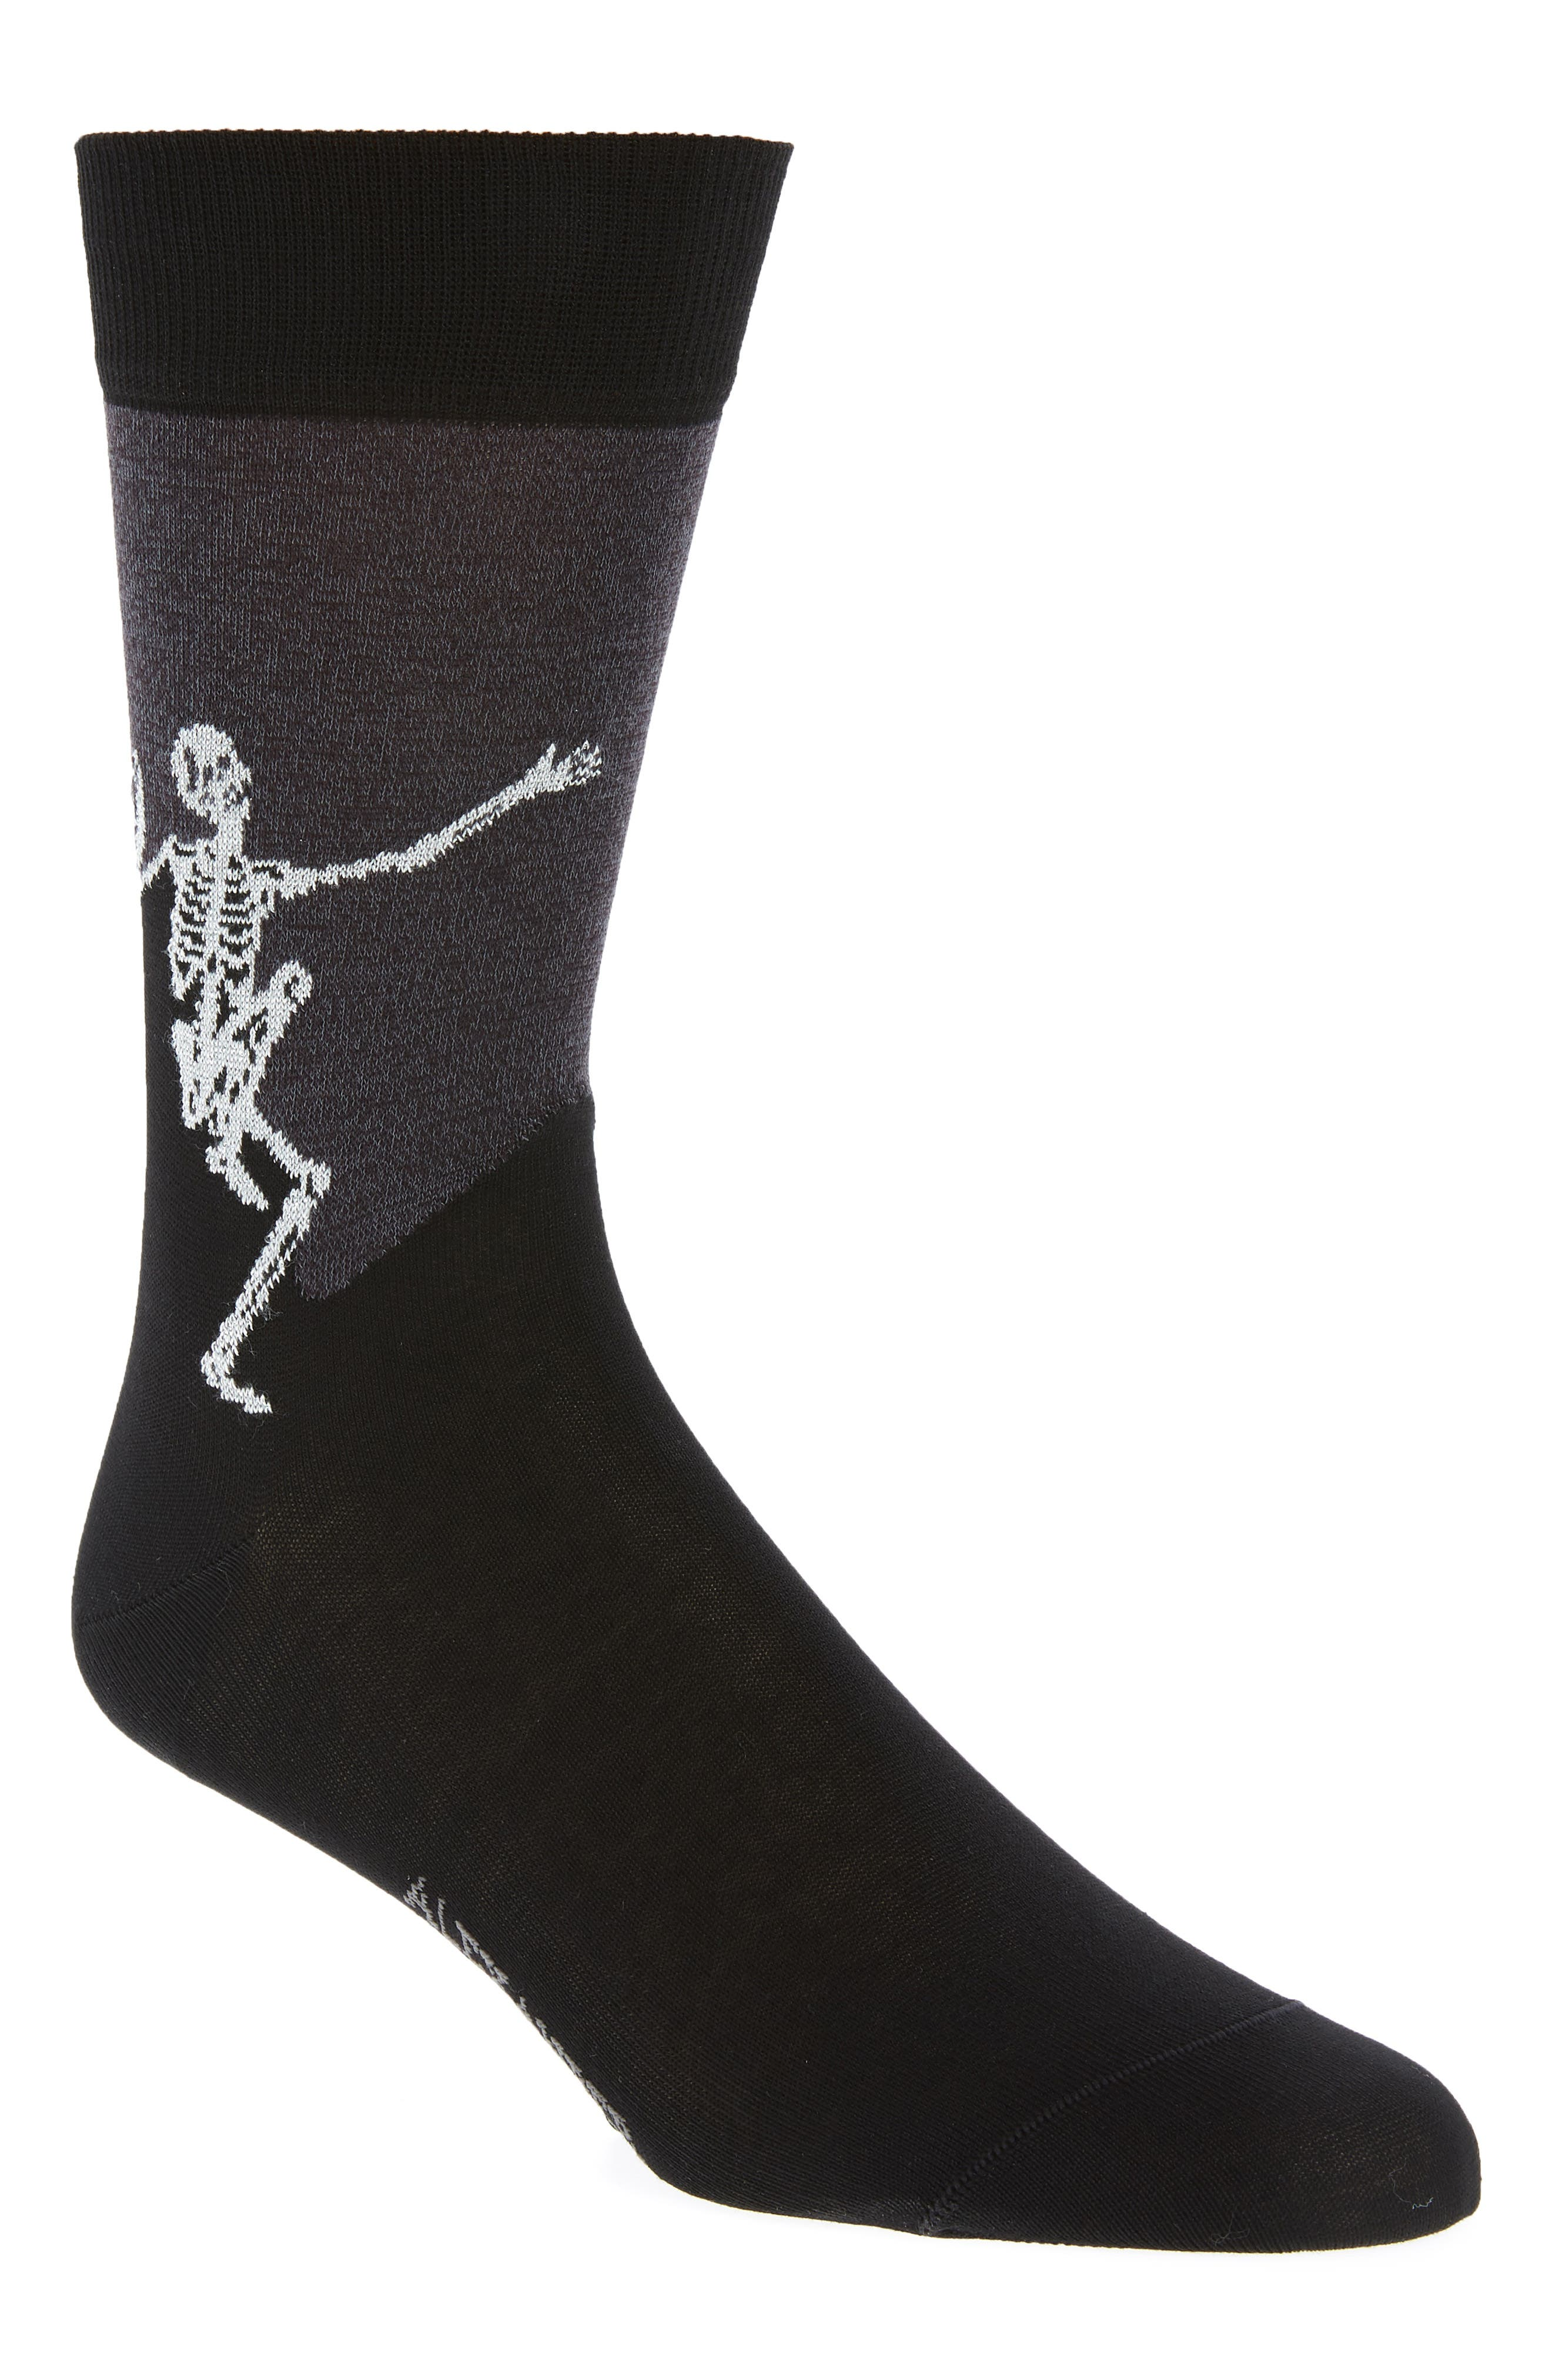 Free Shipping Collections Black and Grey Dancing Skeleton Socks Alexander McQueen Cheap Purchase Huge Range Of 2018 For Sale A2EFNhAu